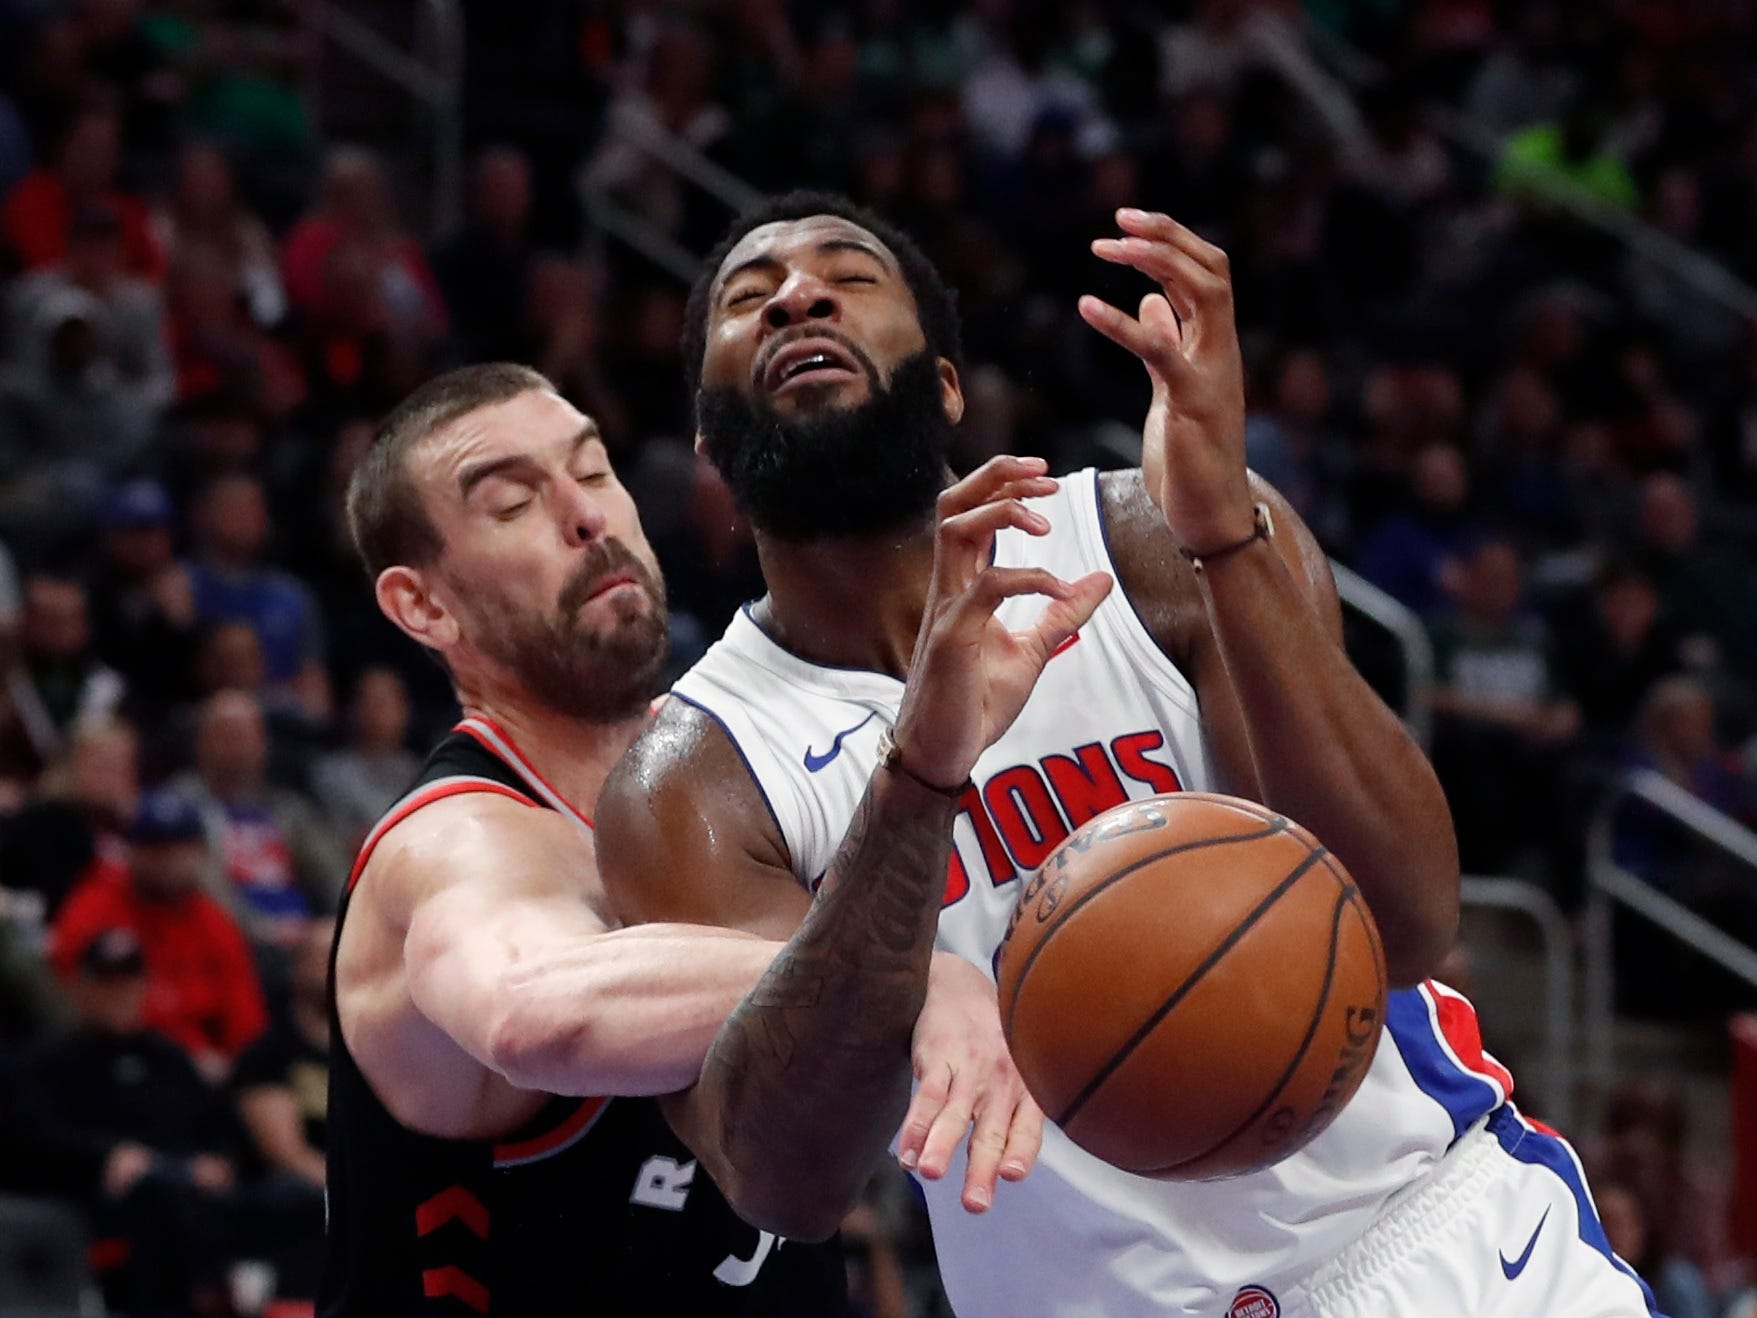 Toronto Raptors center Marc Gasol strips the ball from Andre Drummond during the second half of the Detroit Pistons' 110-107 win Sunday, March 17, 2019, in Detroit.